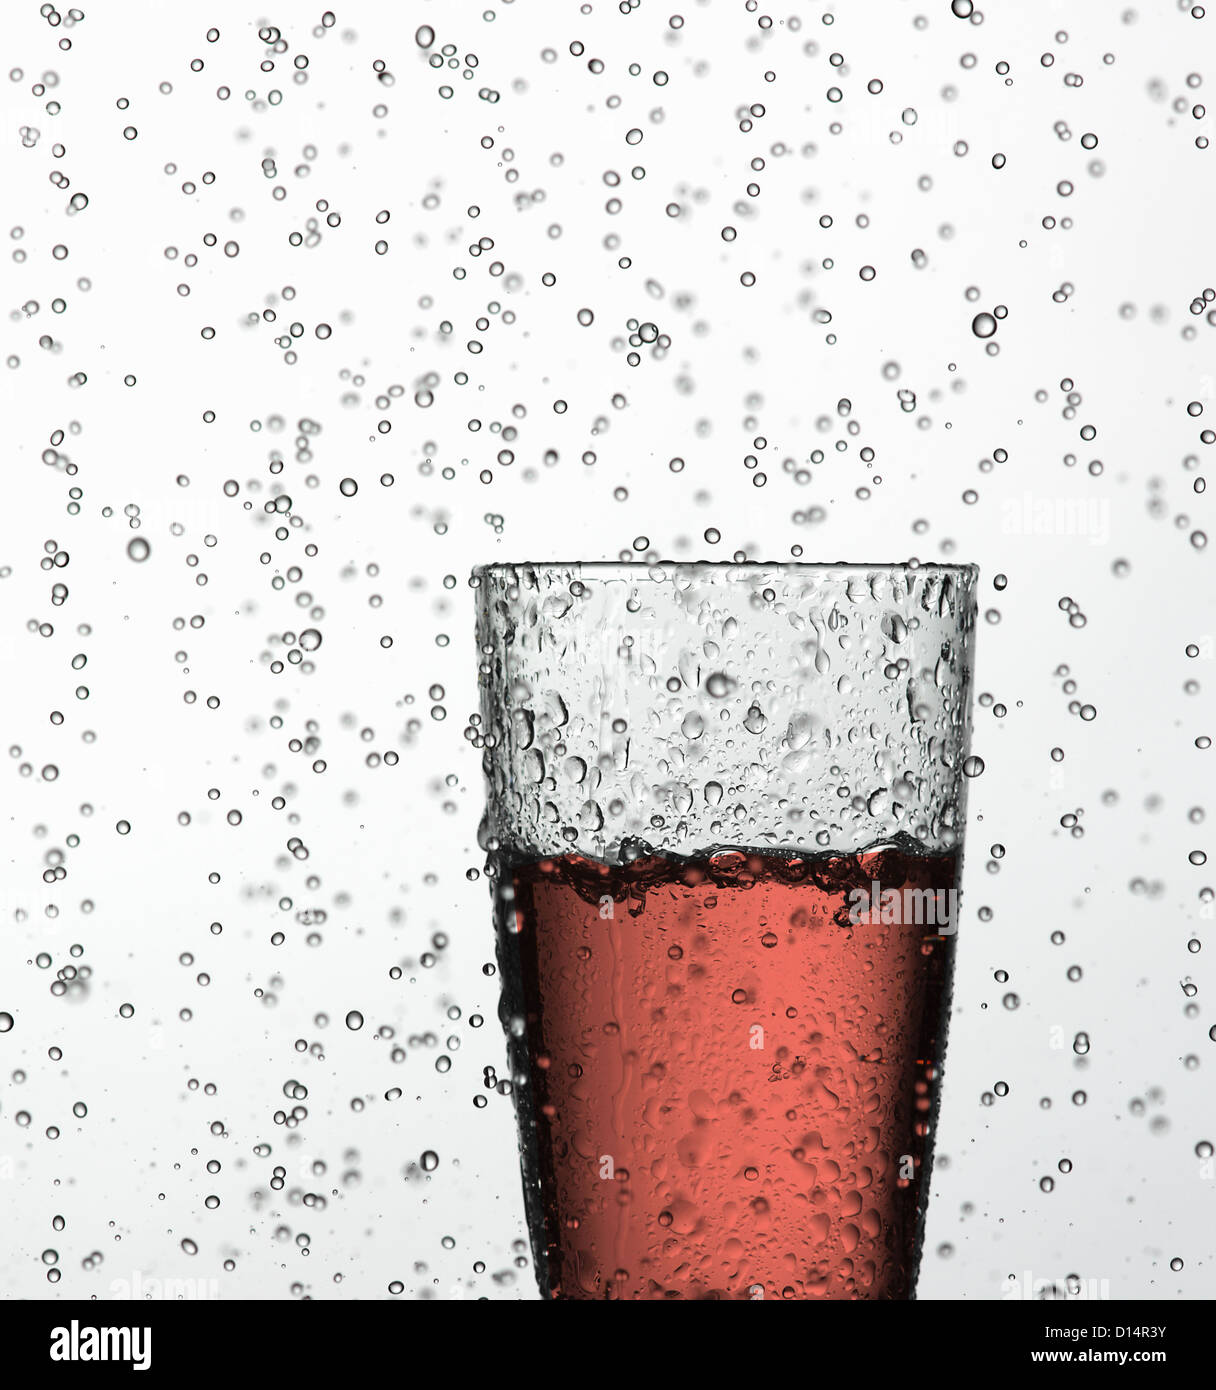 Glass of juice in water drops - Stock Image